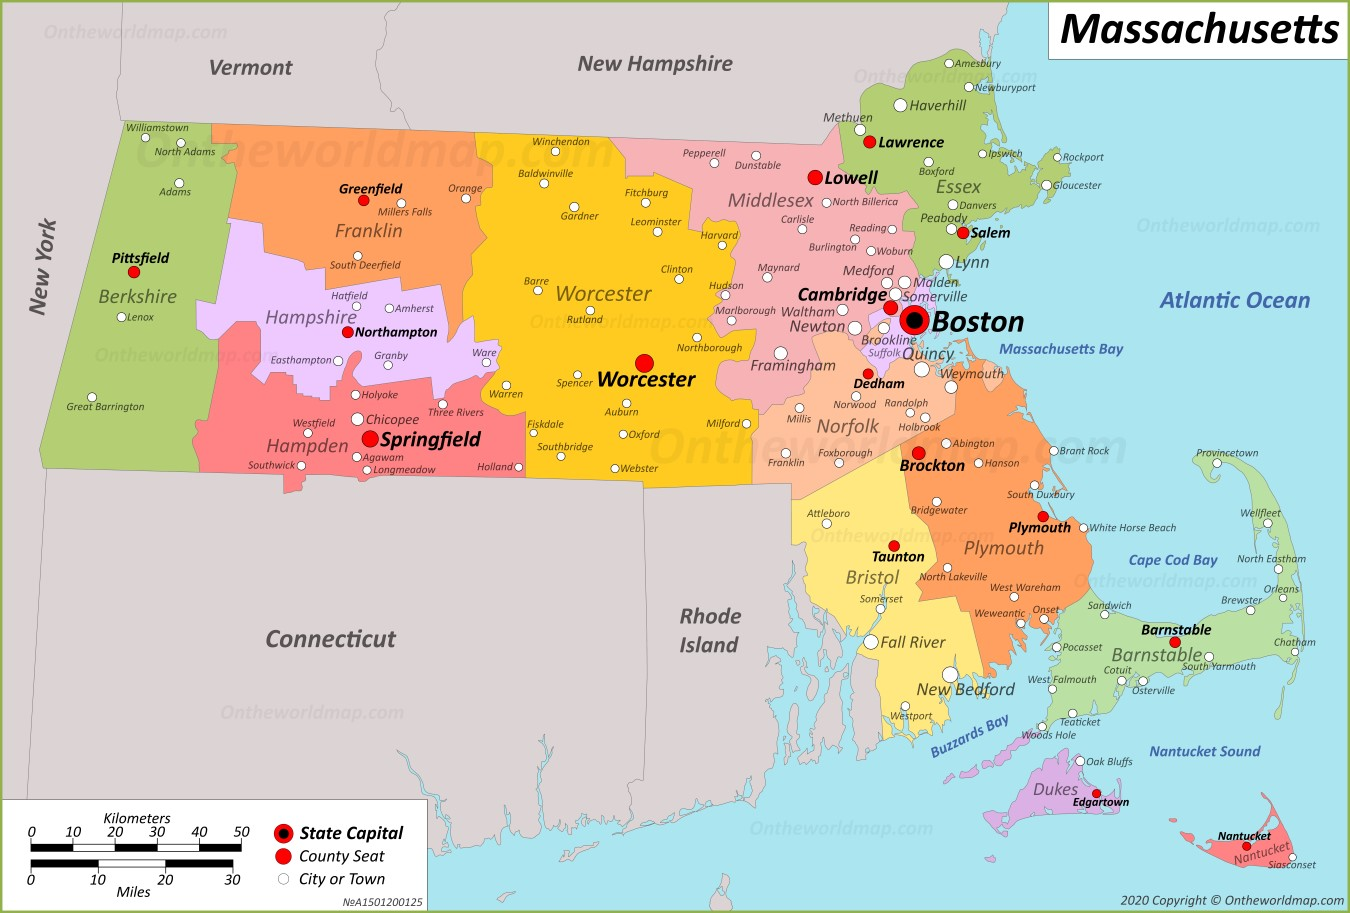 Map of Massachusetts showing Service area for Targeted Web Design including cities of services Andover, North Andover, Burlington, Dracut, Billerica, Tewksbury, Reading, North Reading, Wilmington, Winchester, Lawrence, Lowell, and many more